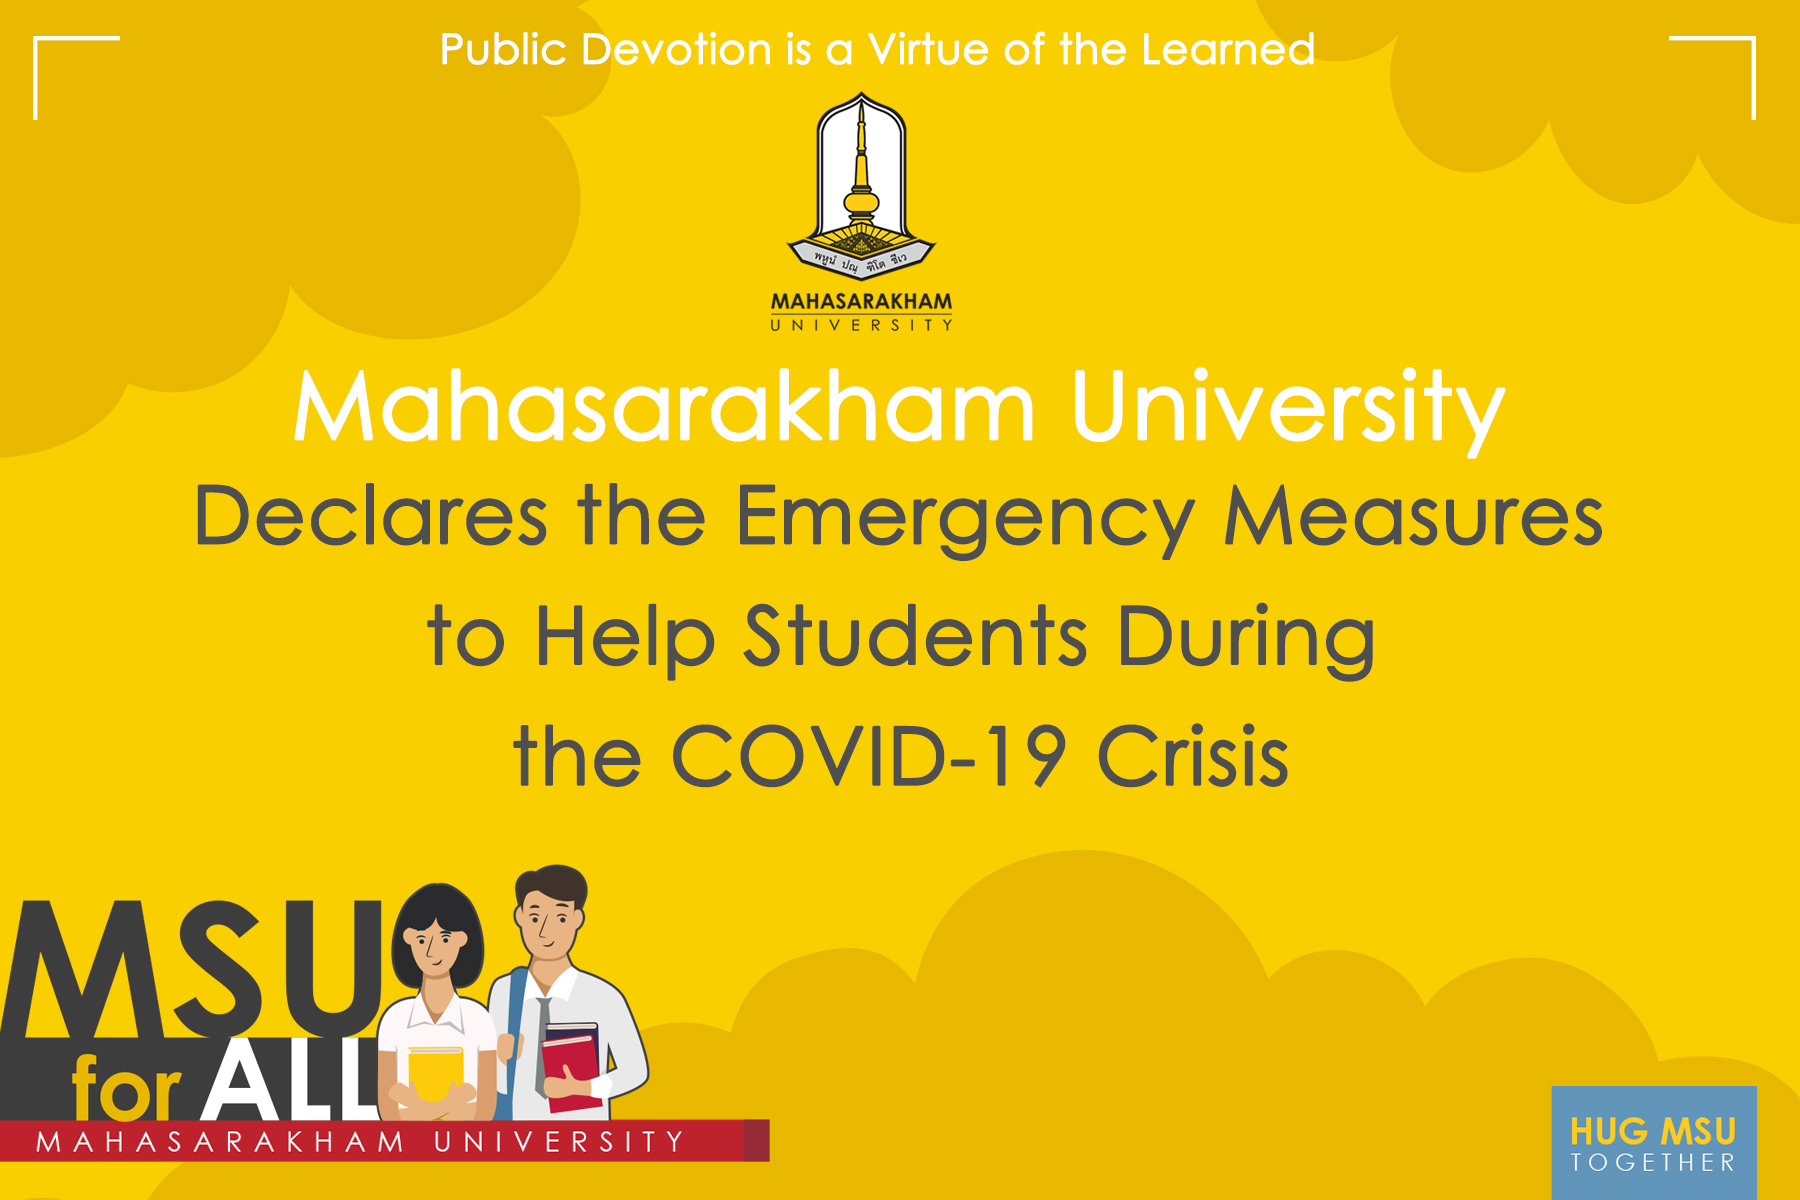 Mahasarakham University Declares the Emergency Measures to Help Students During the COVID-19 Crisis.